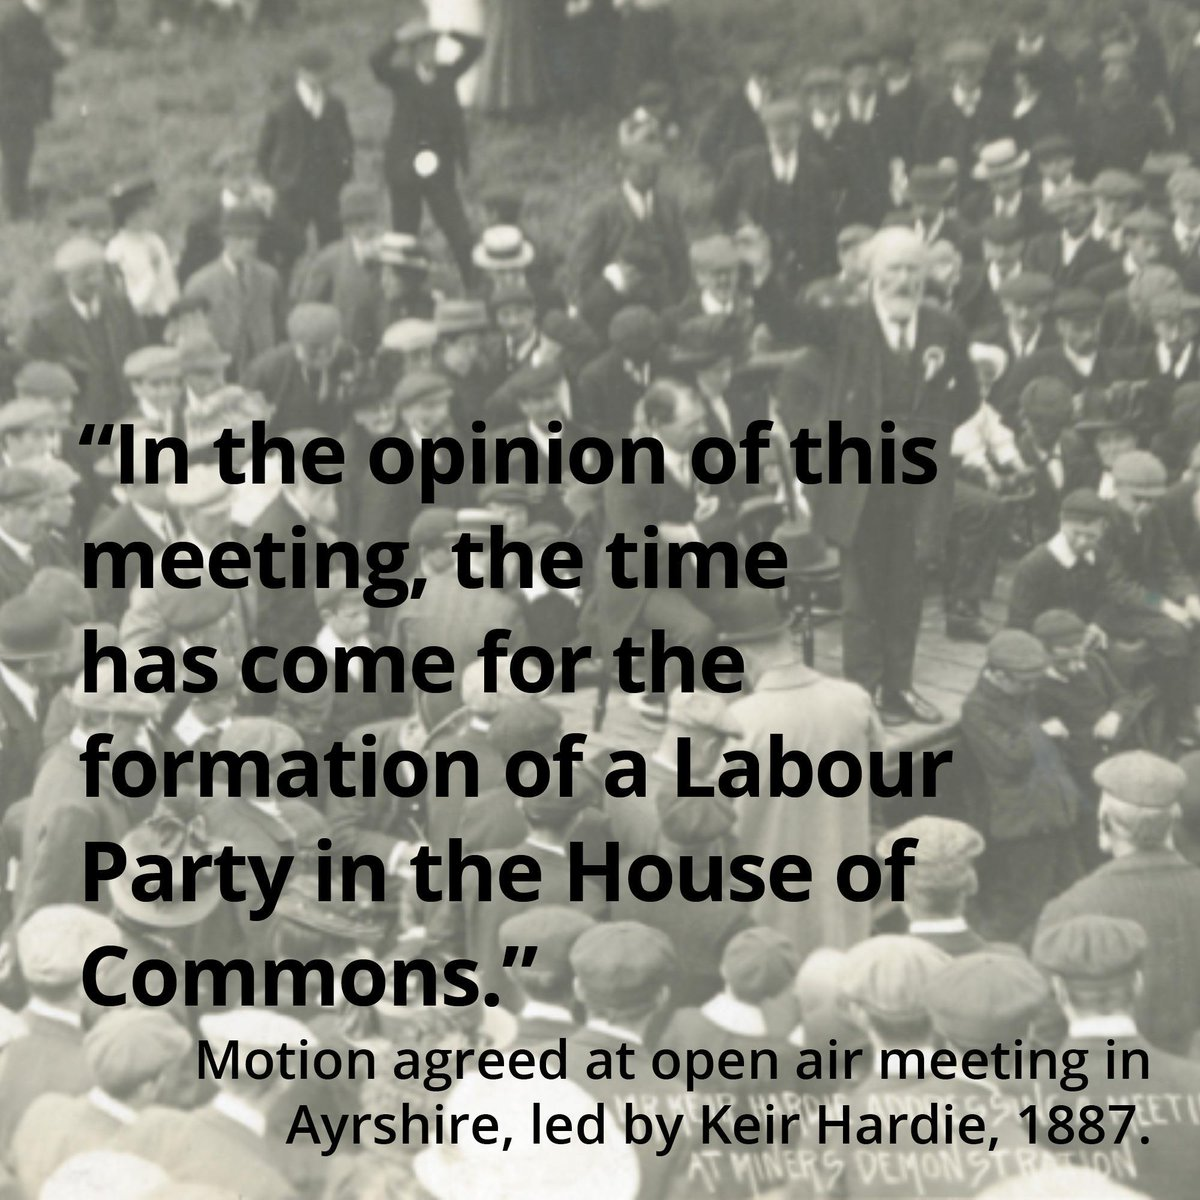 Important to remember the struggles of Keir Hardie on 100th anniversary of his death #KeirHardie100 http://t.co/47DOiKJ06V